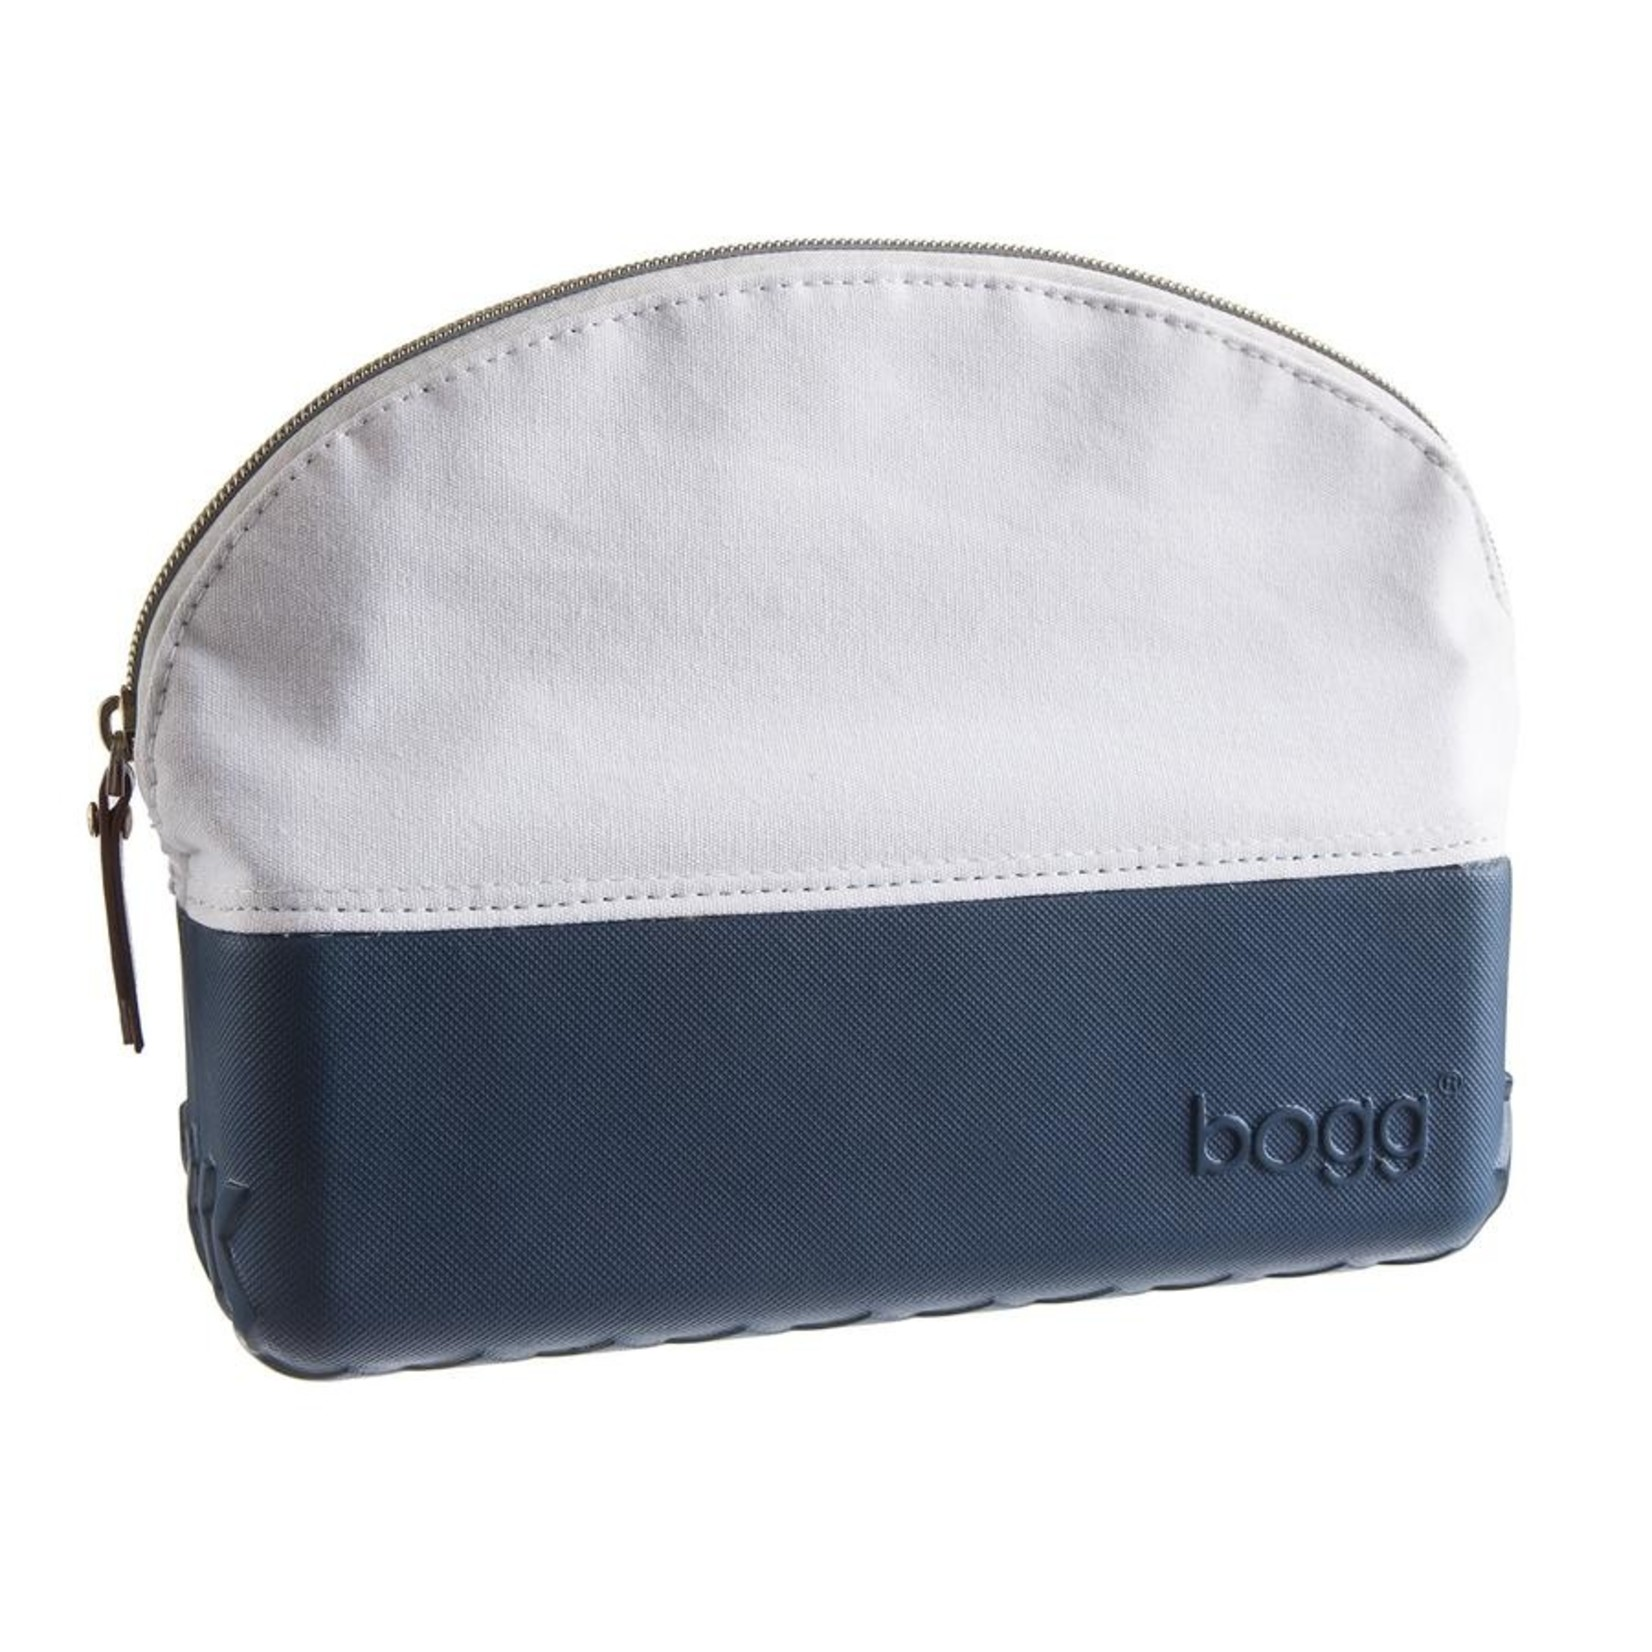 Bogg Bags NAVY BEAUTY AND THE BOGG